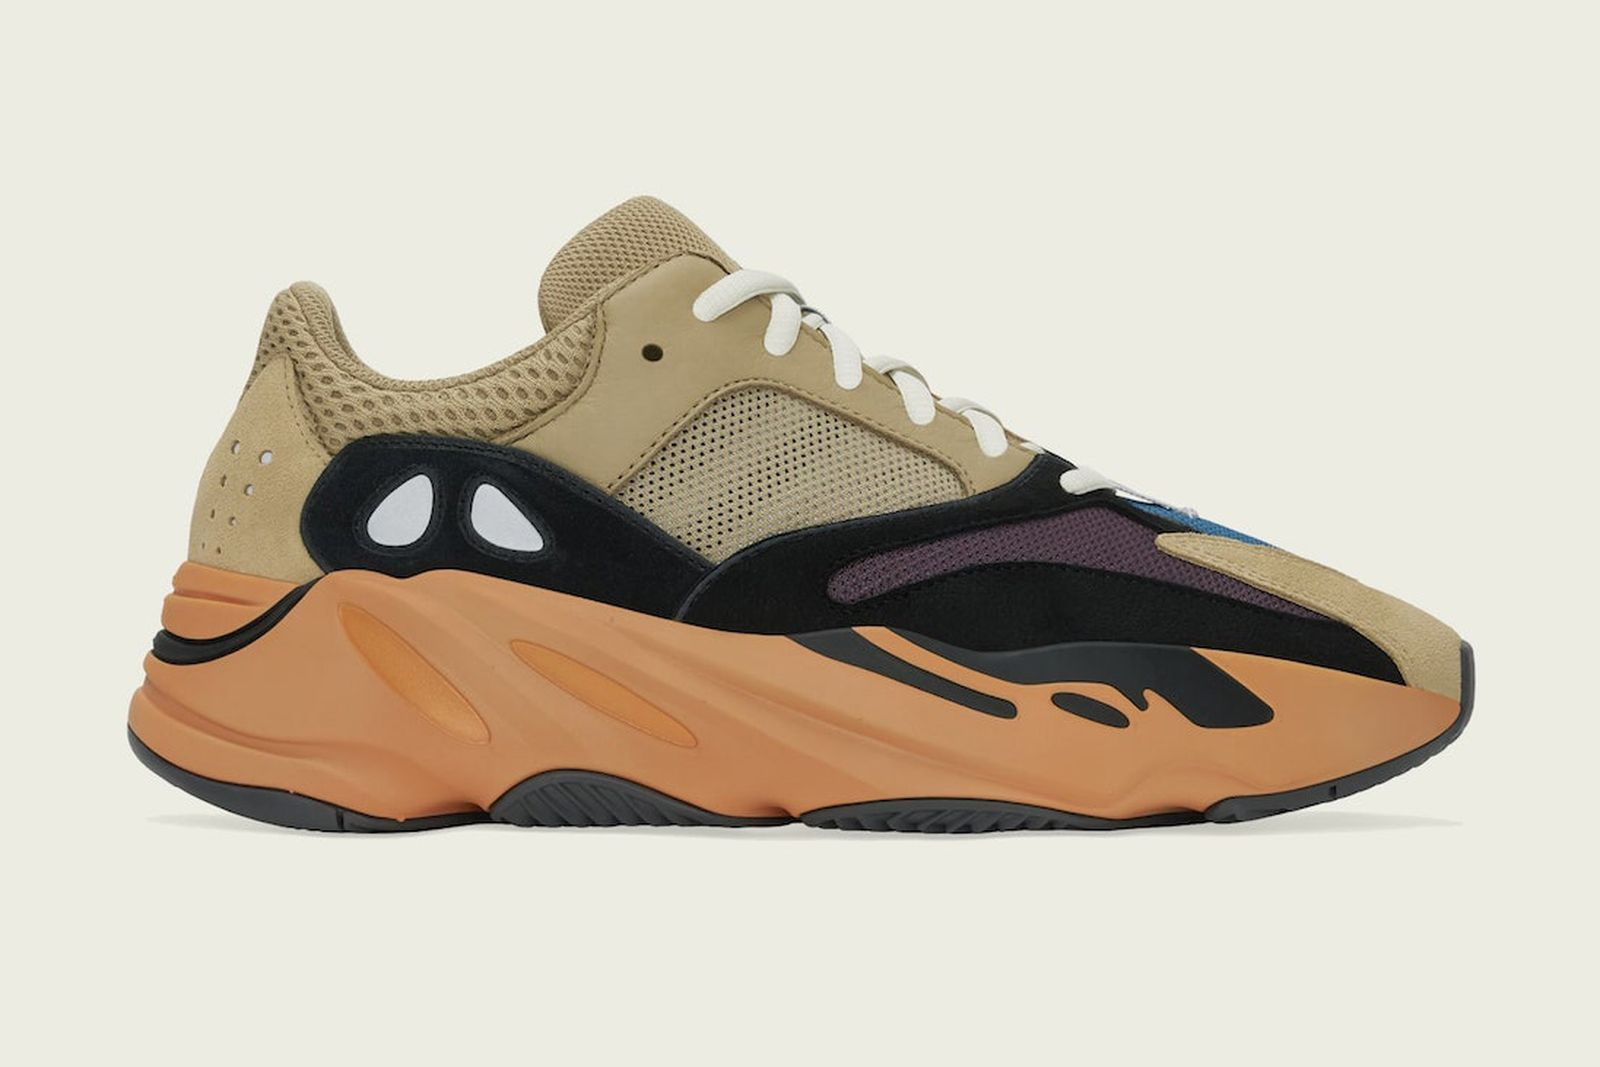 adidas YEEZY Spring/Summer 2021: Images & Release Info